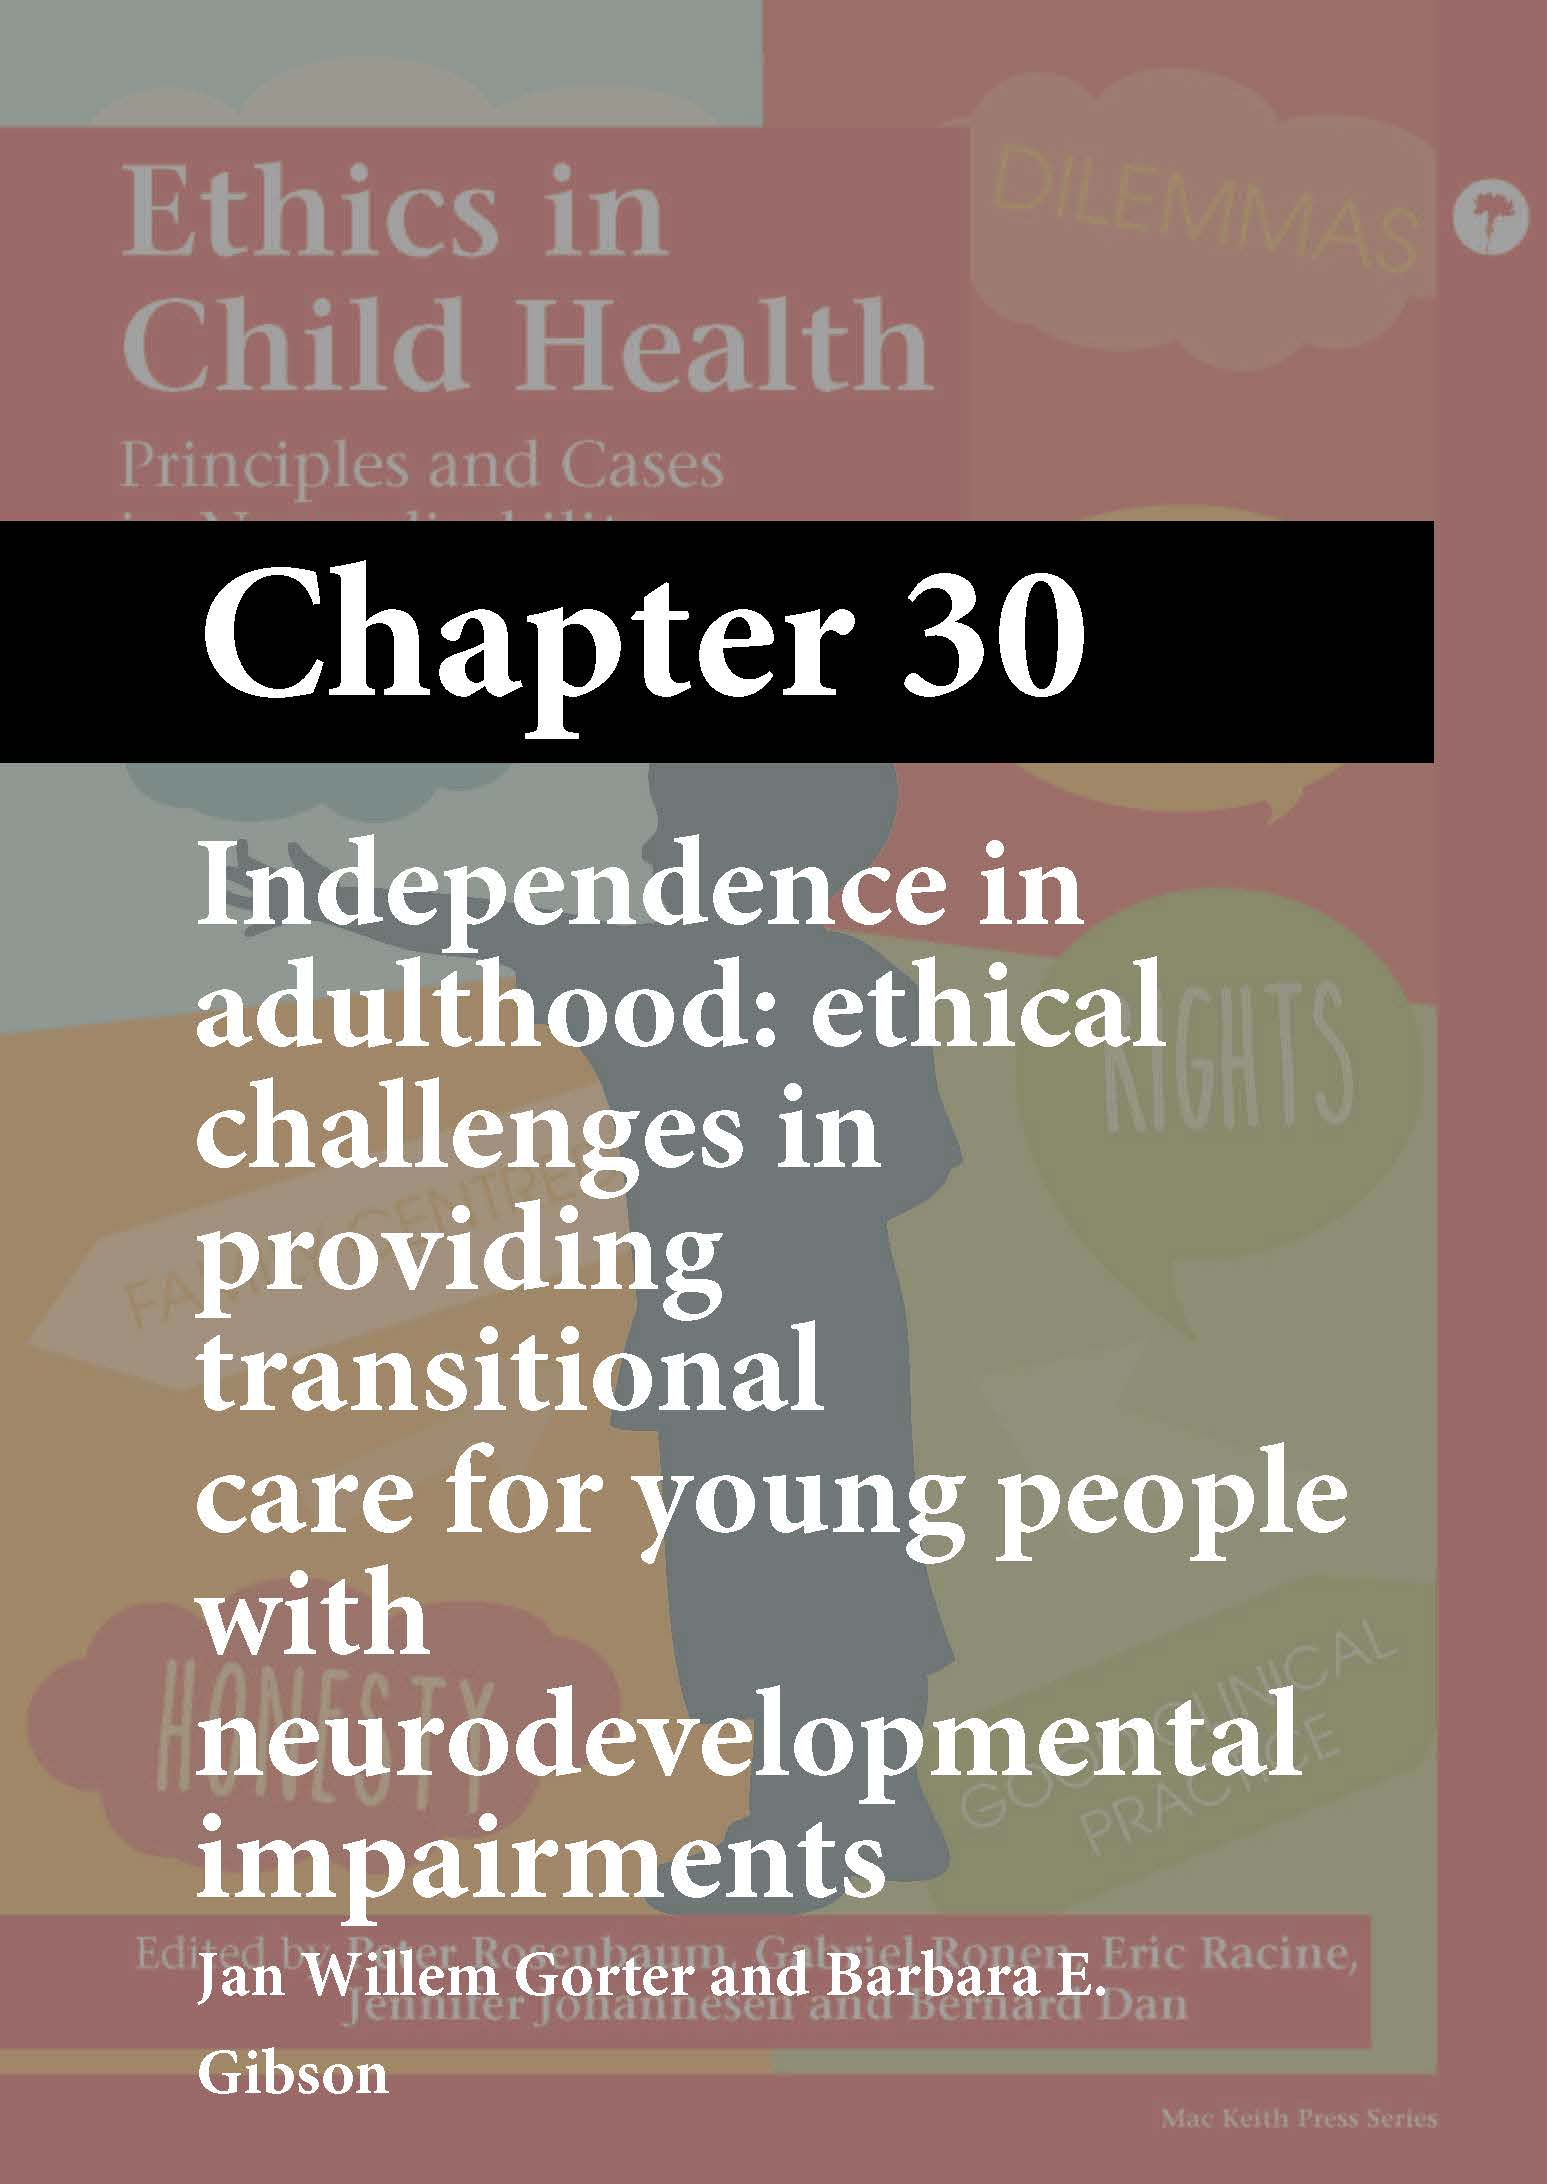 Ethics in Child Health, Rosenbaum, Chapter 30 cover